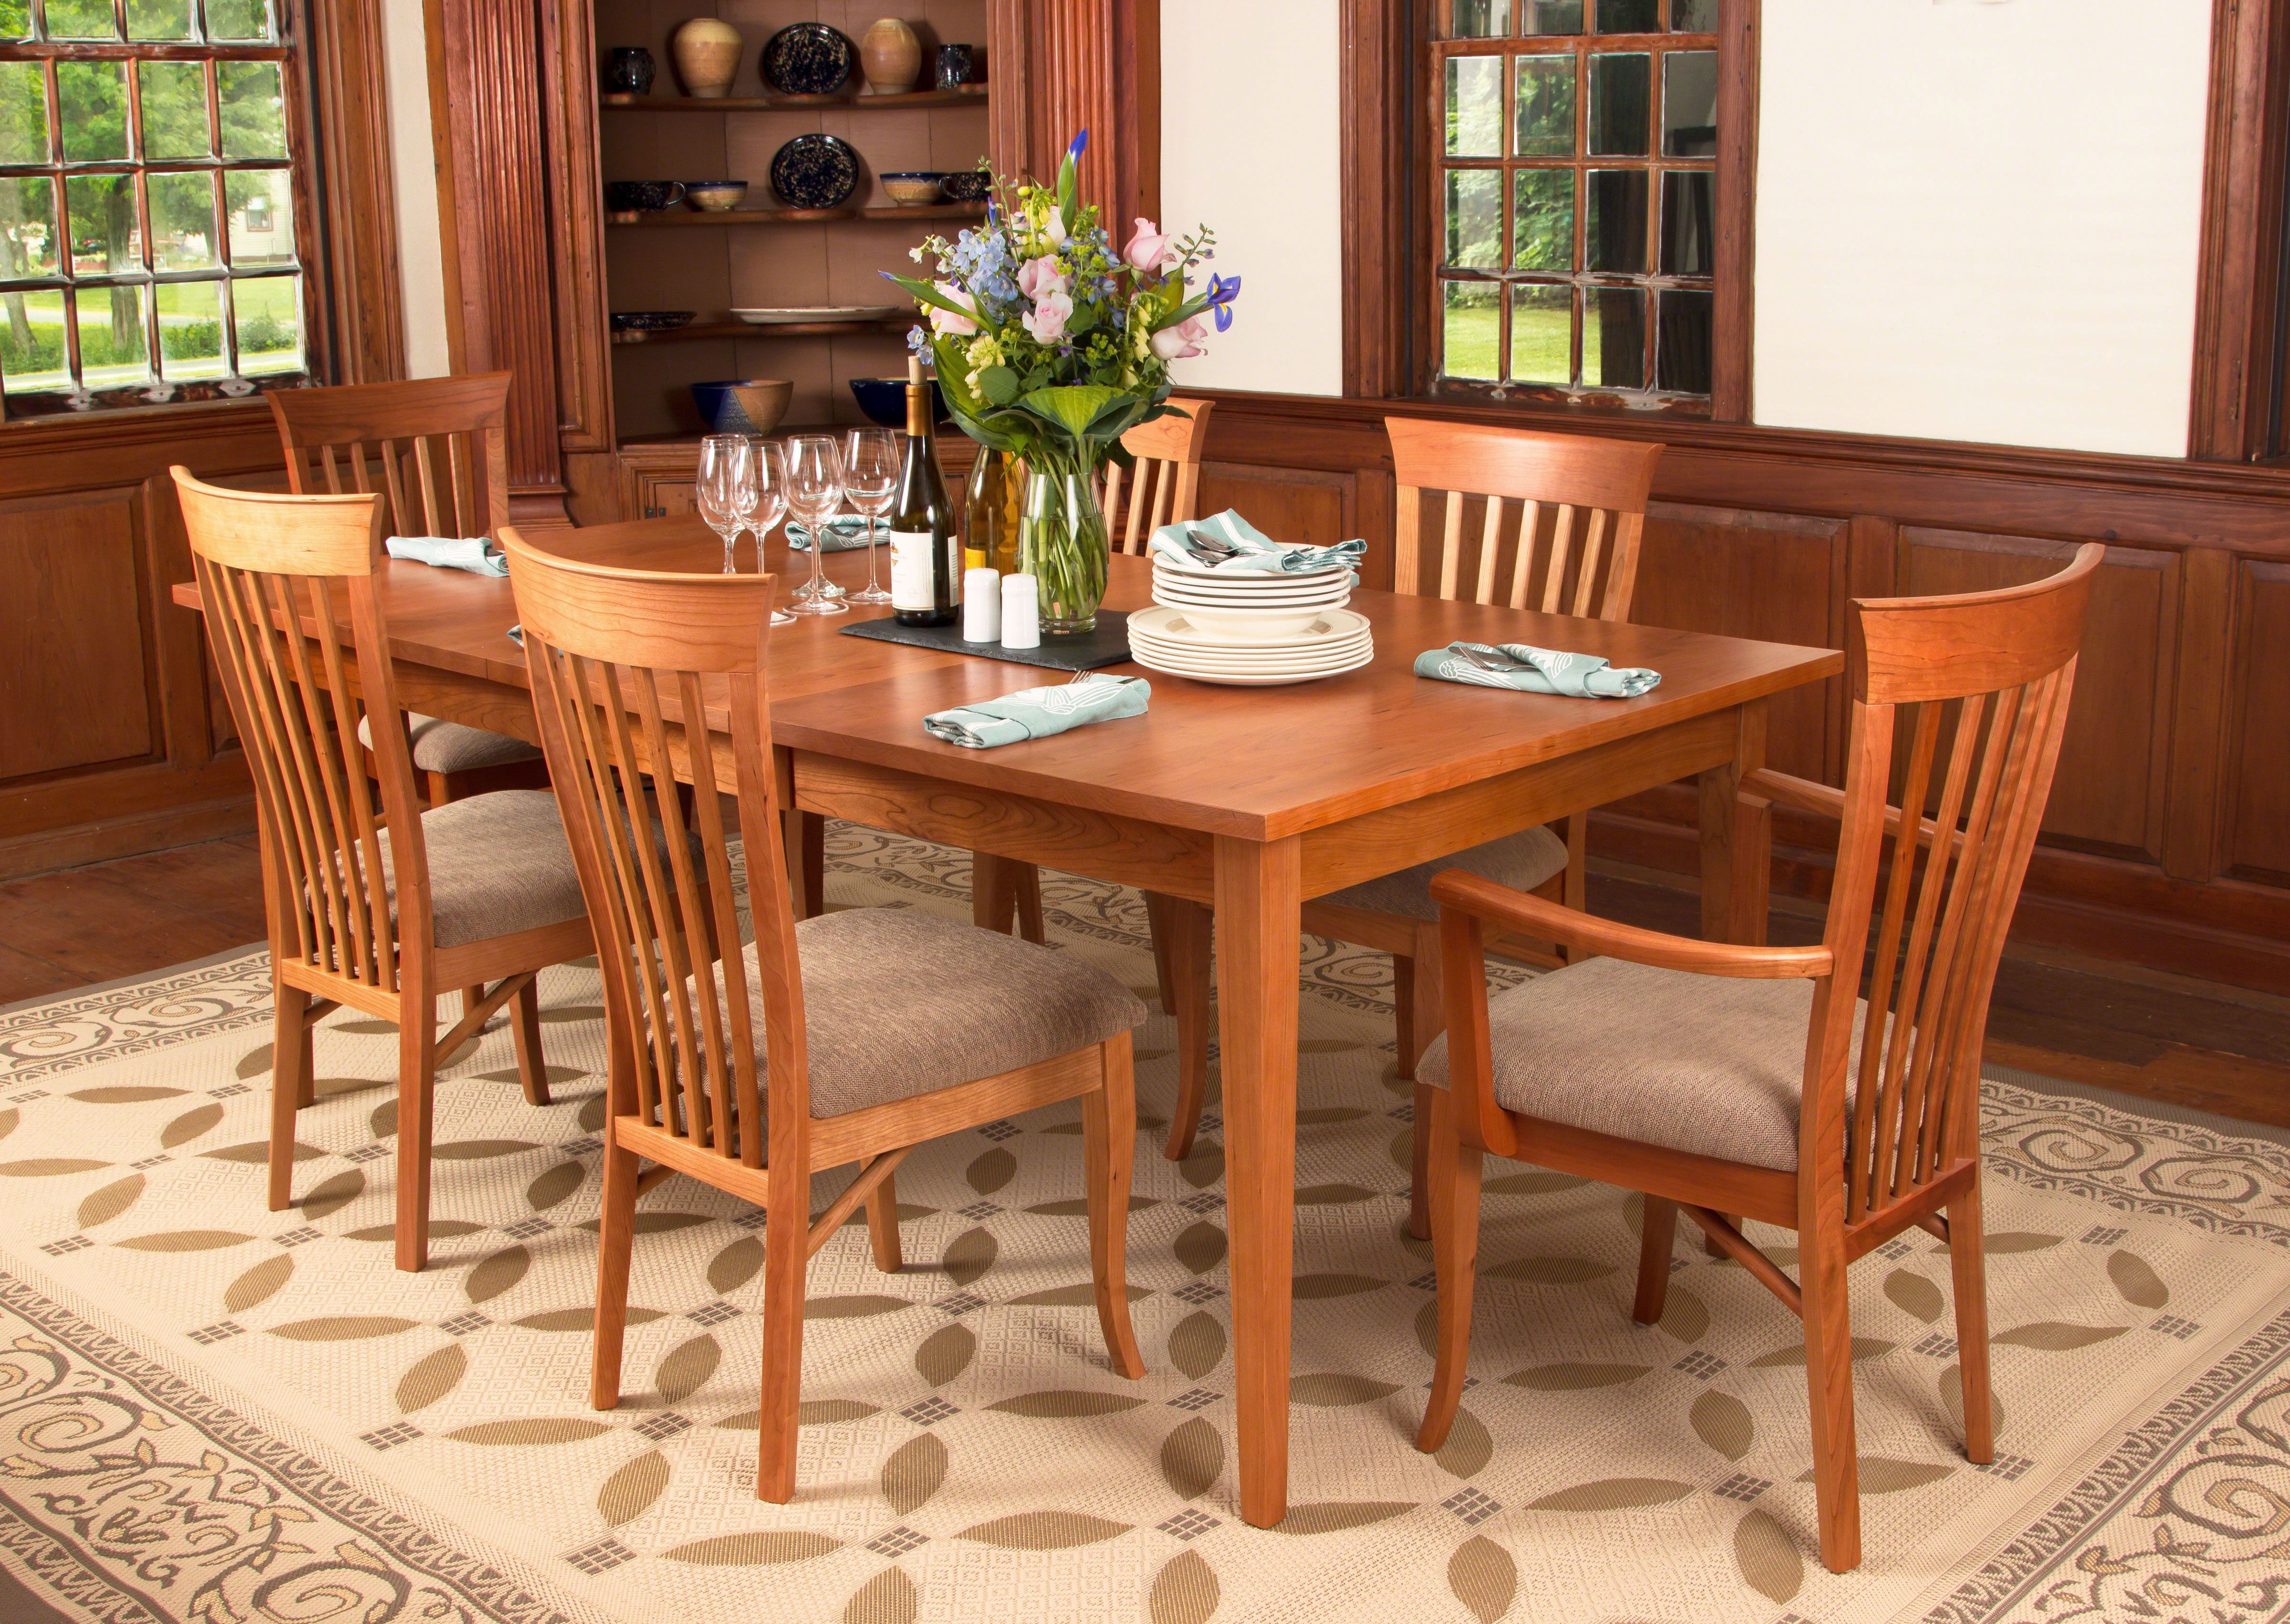 Classic Shaker Dining Table In 2020 Wood Dining Room Table